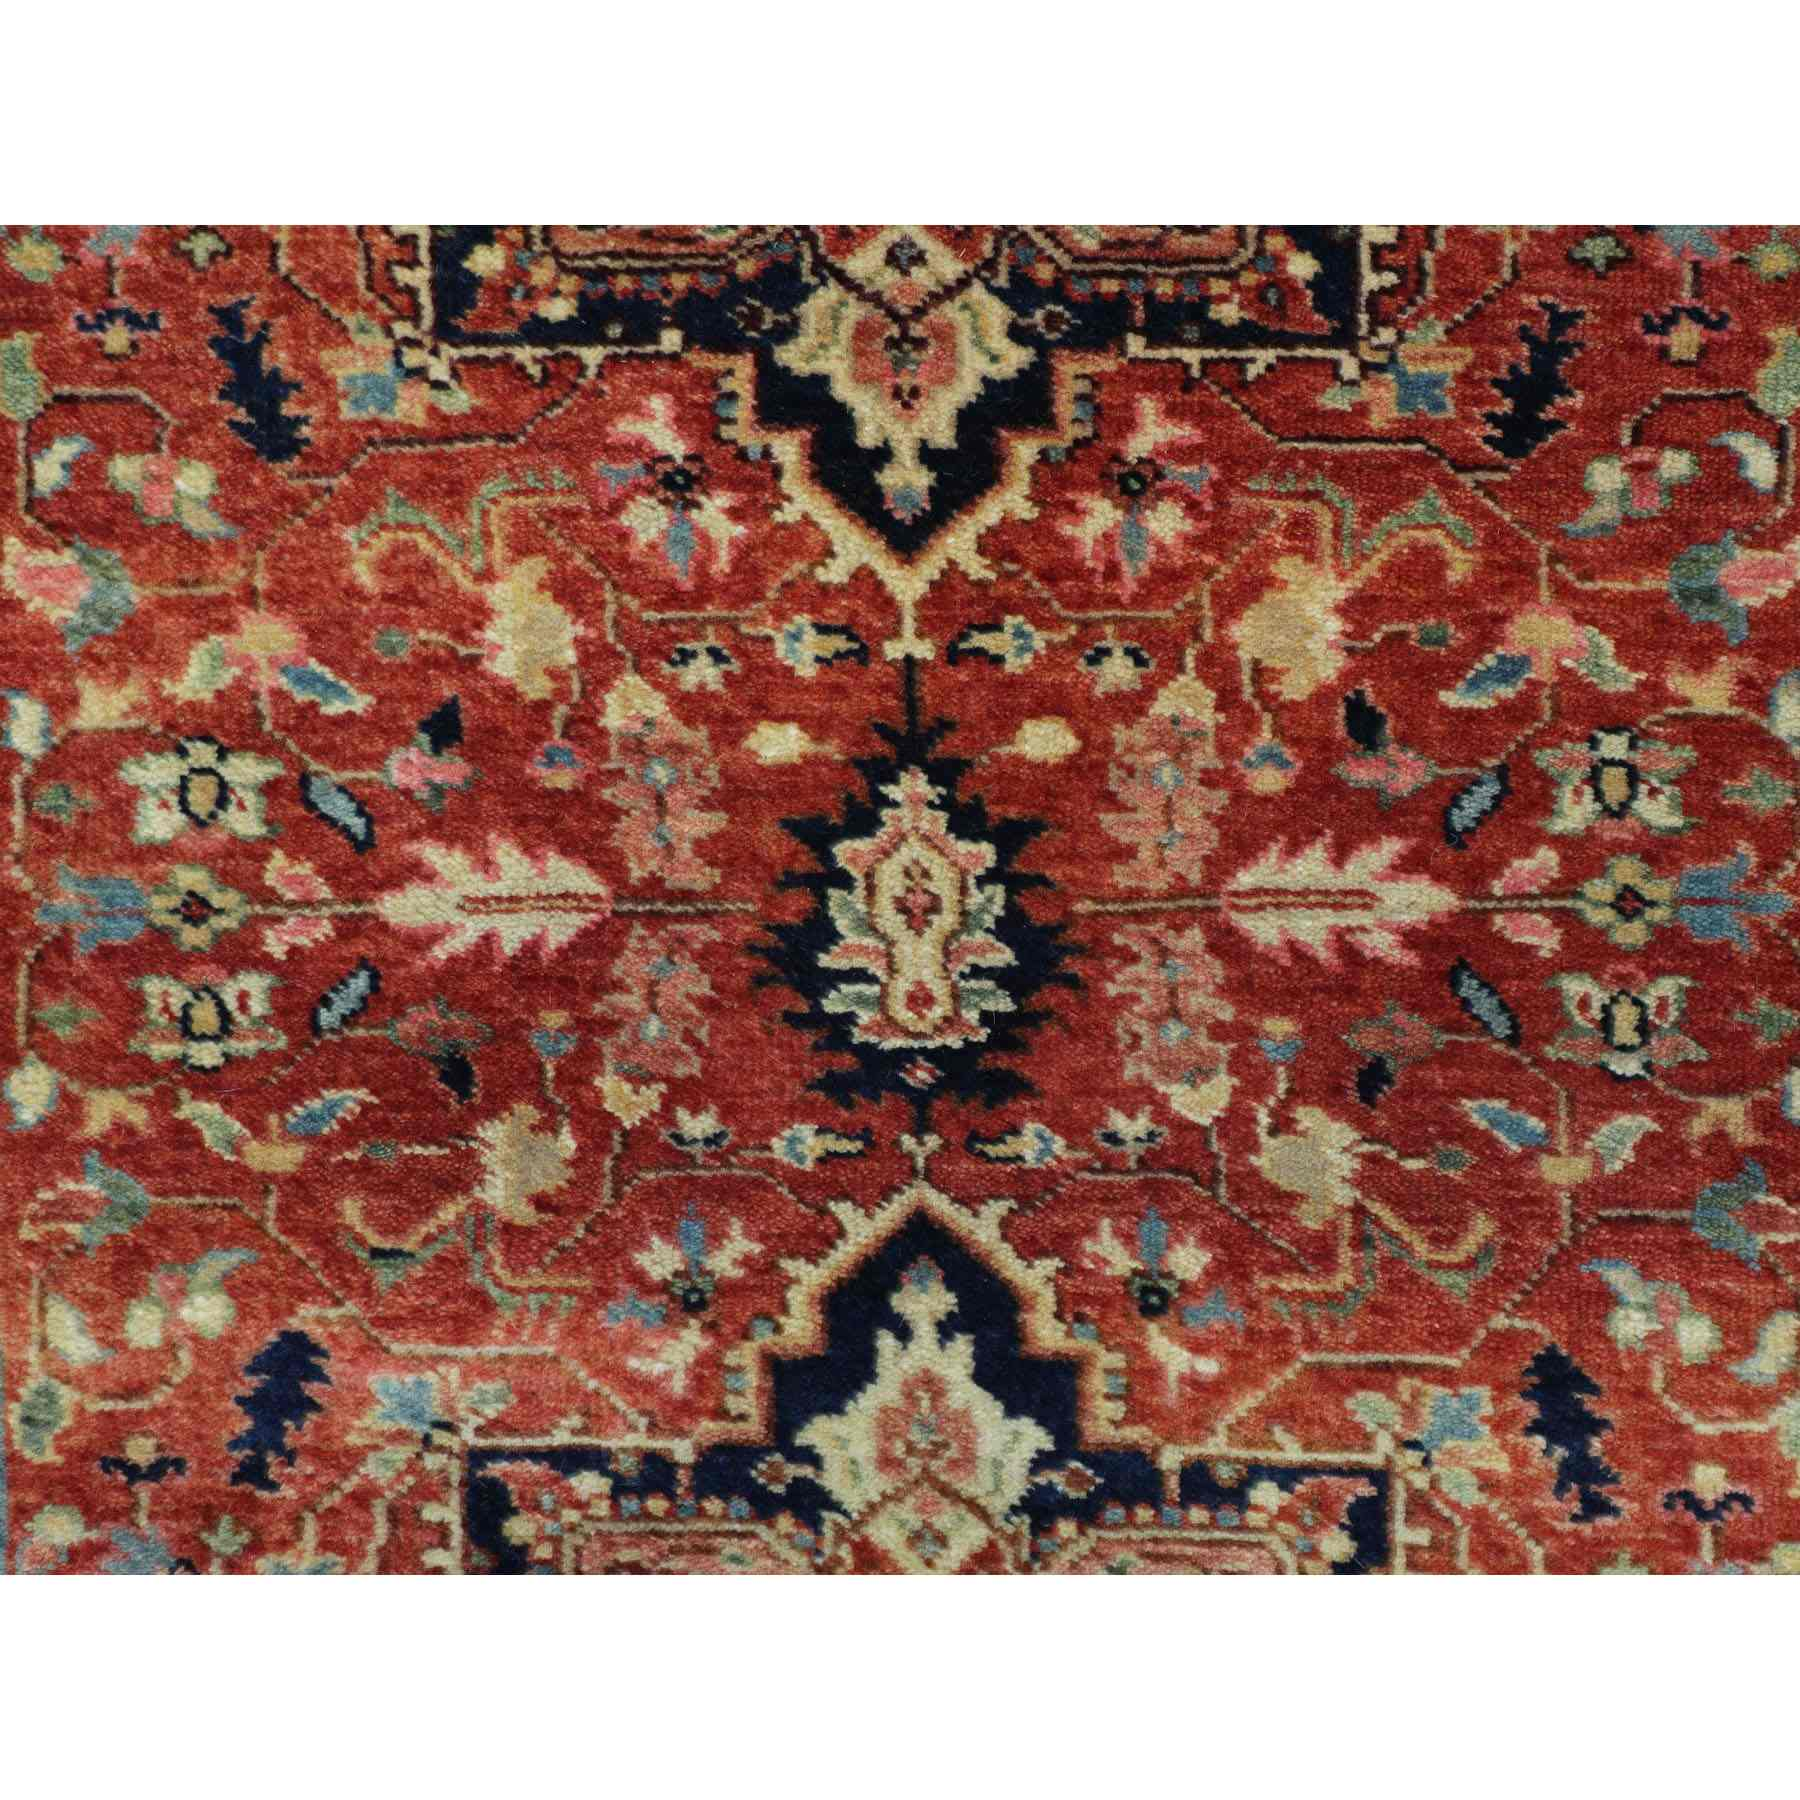 Heriz-Hand-Knotted-Rug-290435